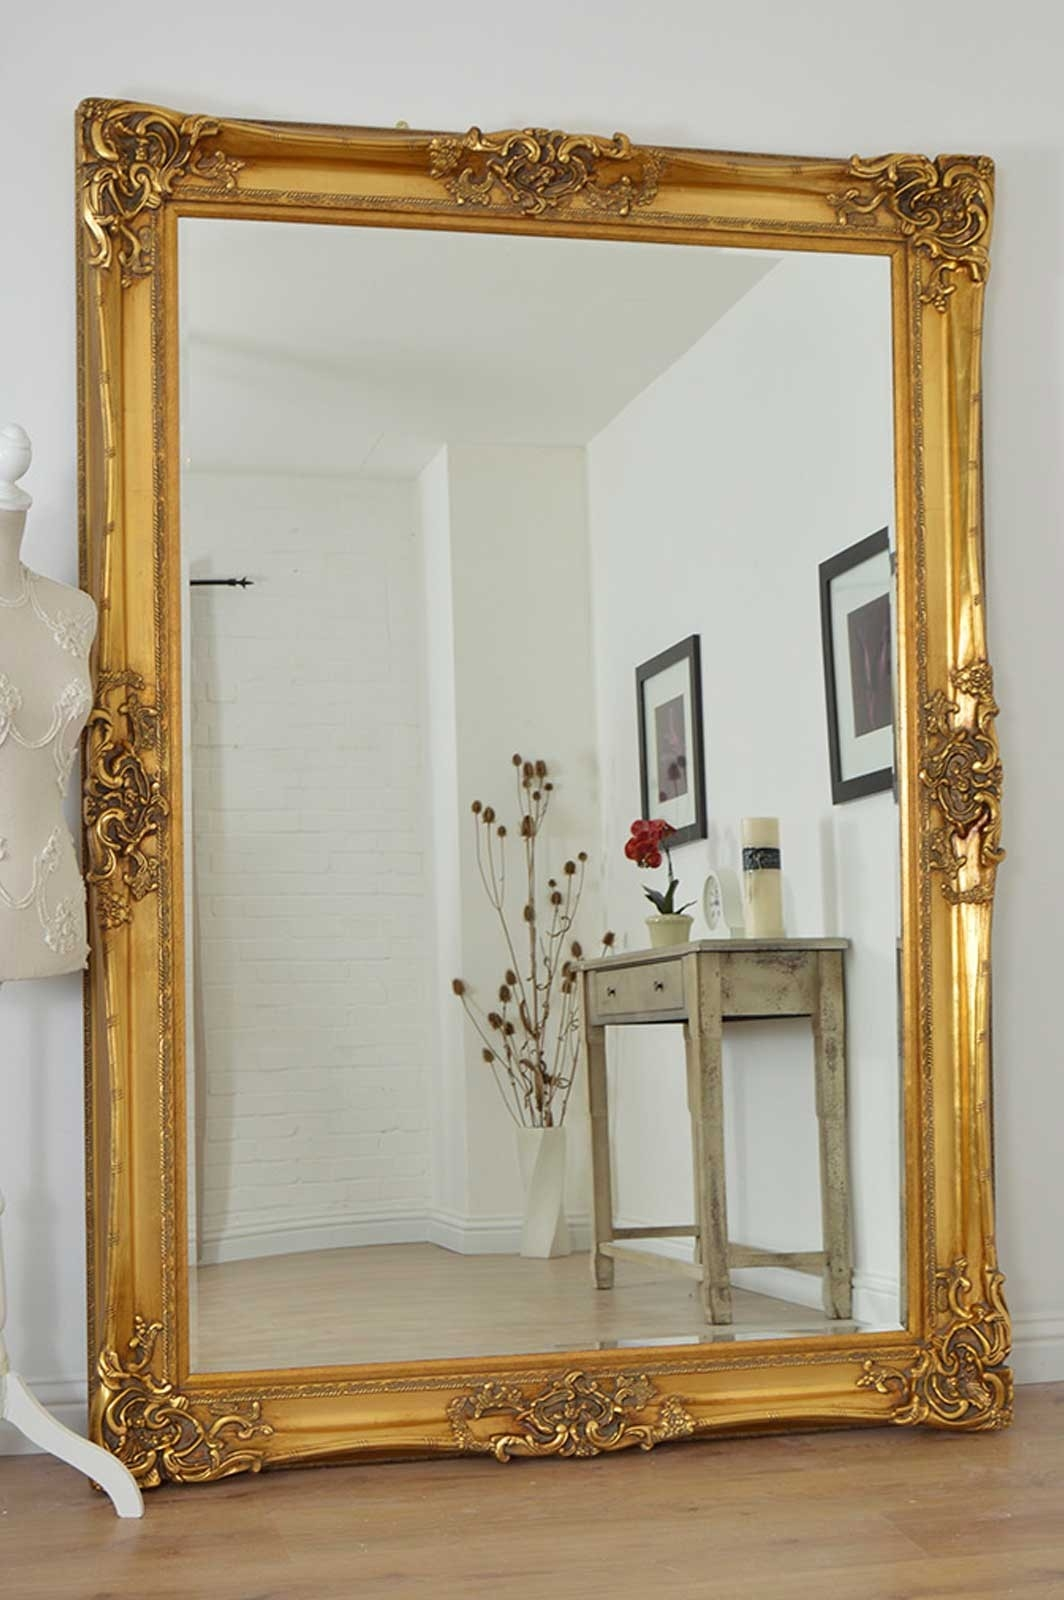 Large Gold Very Ornate Antique Design Wall Mirror 7ft X 5ft 213cm Within Gold Antique Mirrors (Image 8 of 15)